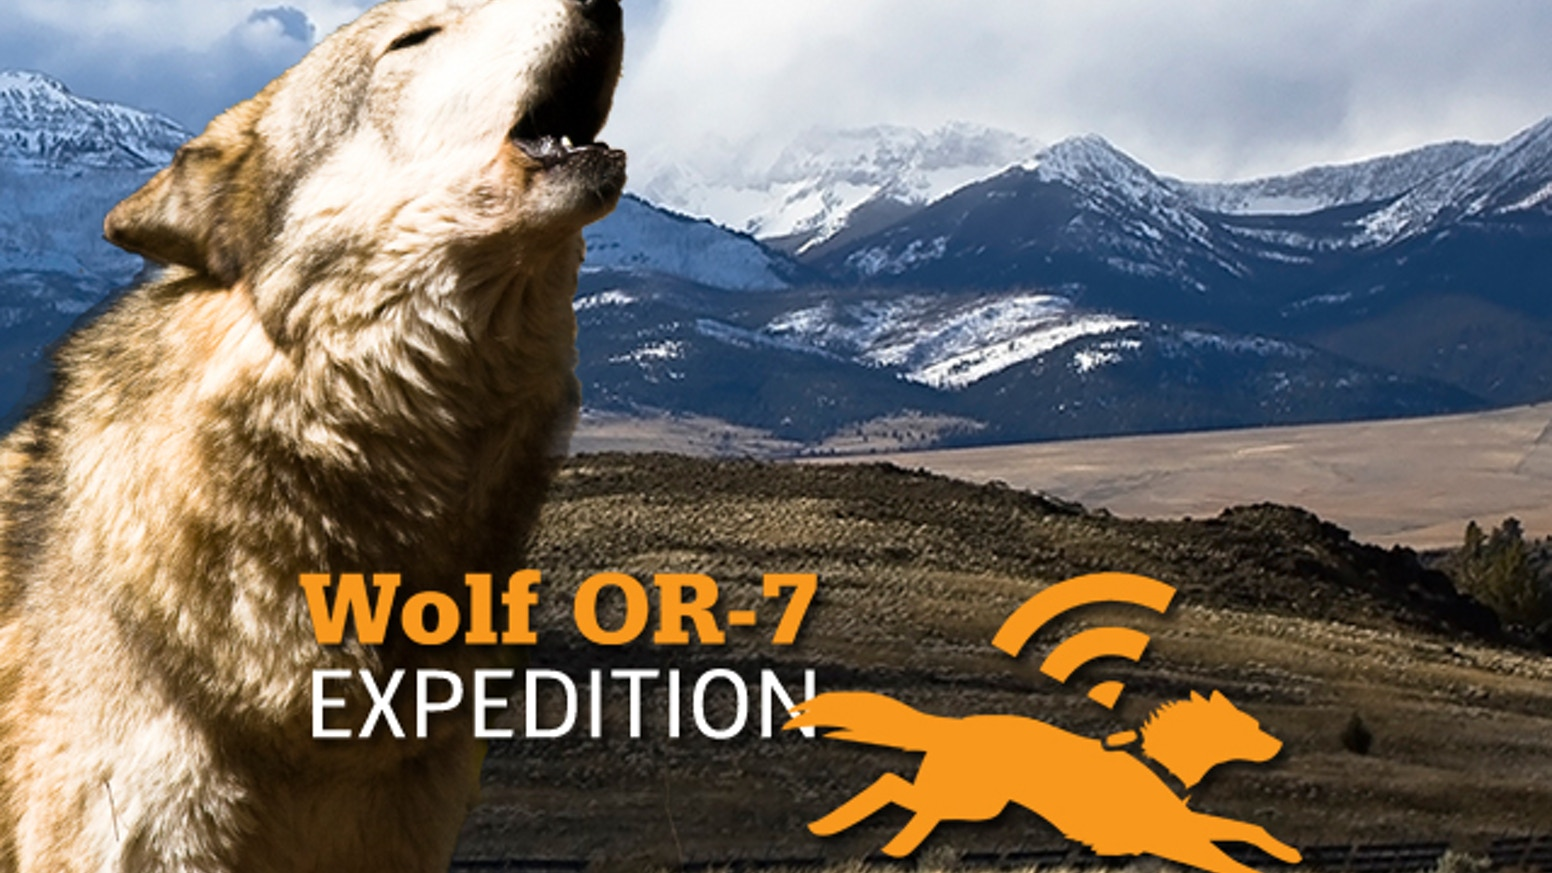 1 Wolf + 6 Adventurers + 1,200 Miles. A documentary expedition retracing the path of Wolf OR-7 to explore coexistence with wolves.